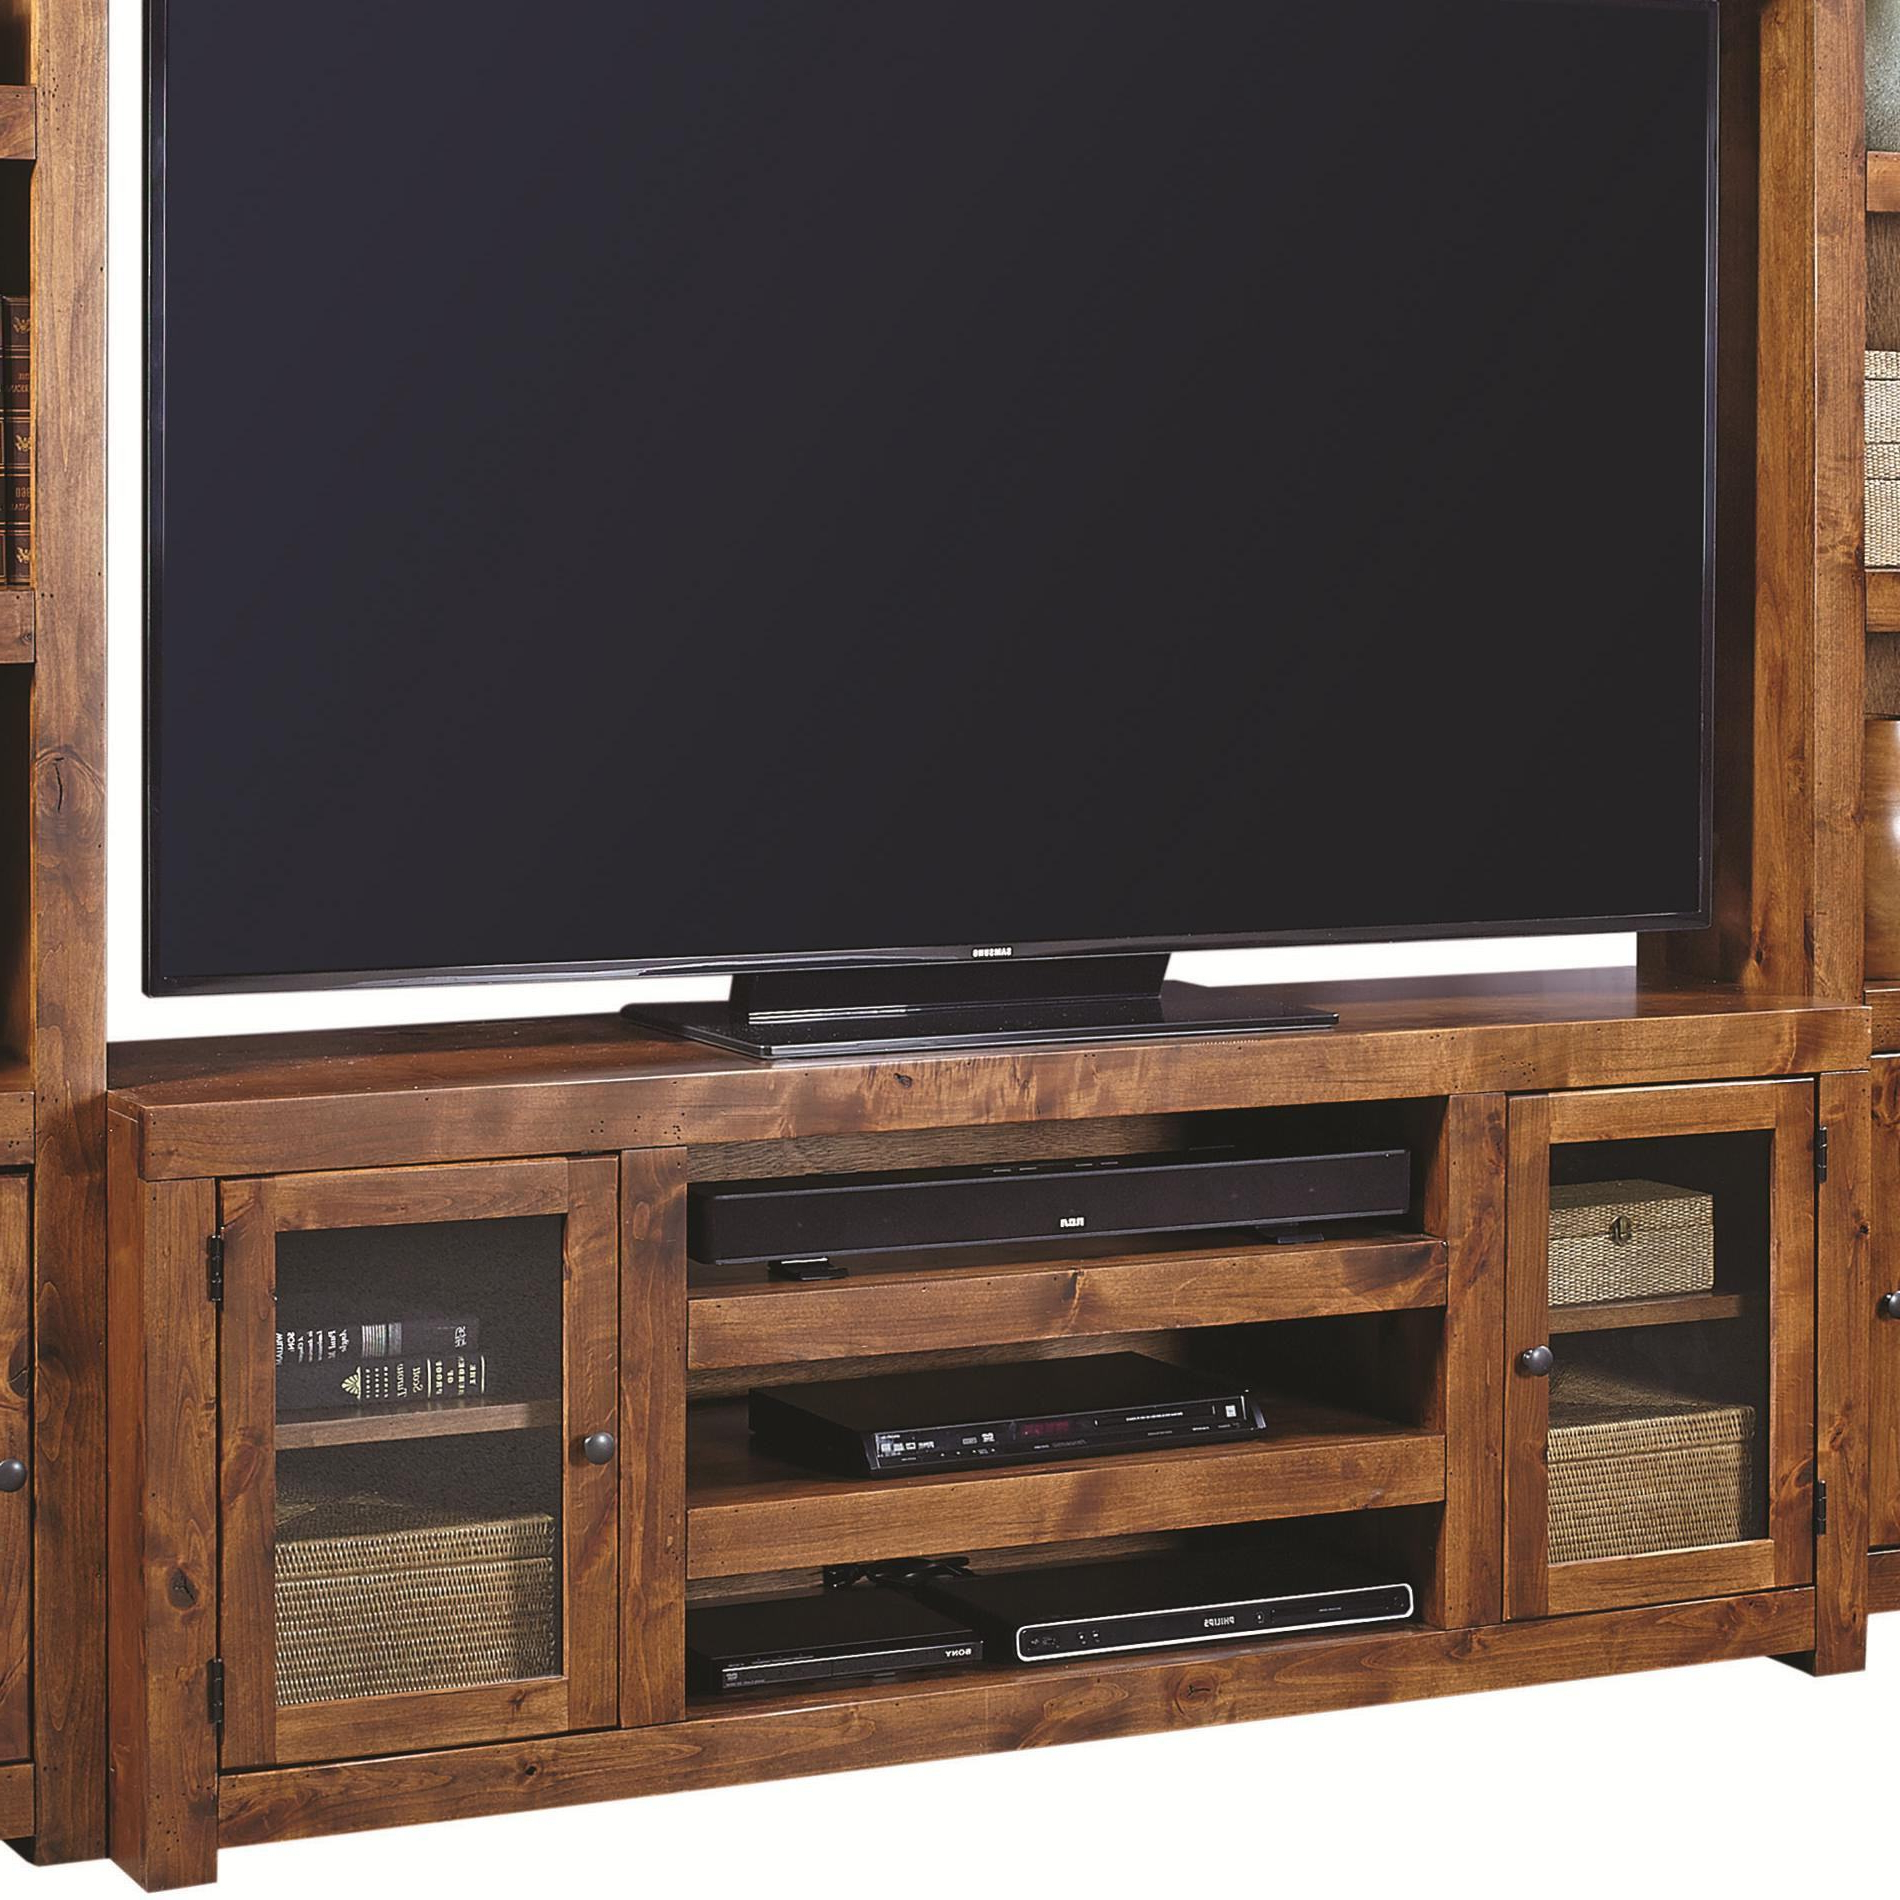 Most Recent Walton 72 Inch Tv Stands With Regard To Ideal Tv Stands 72 Inch Home Ideas 72 Inch Tv Stand (View 10 of 20)